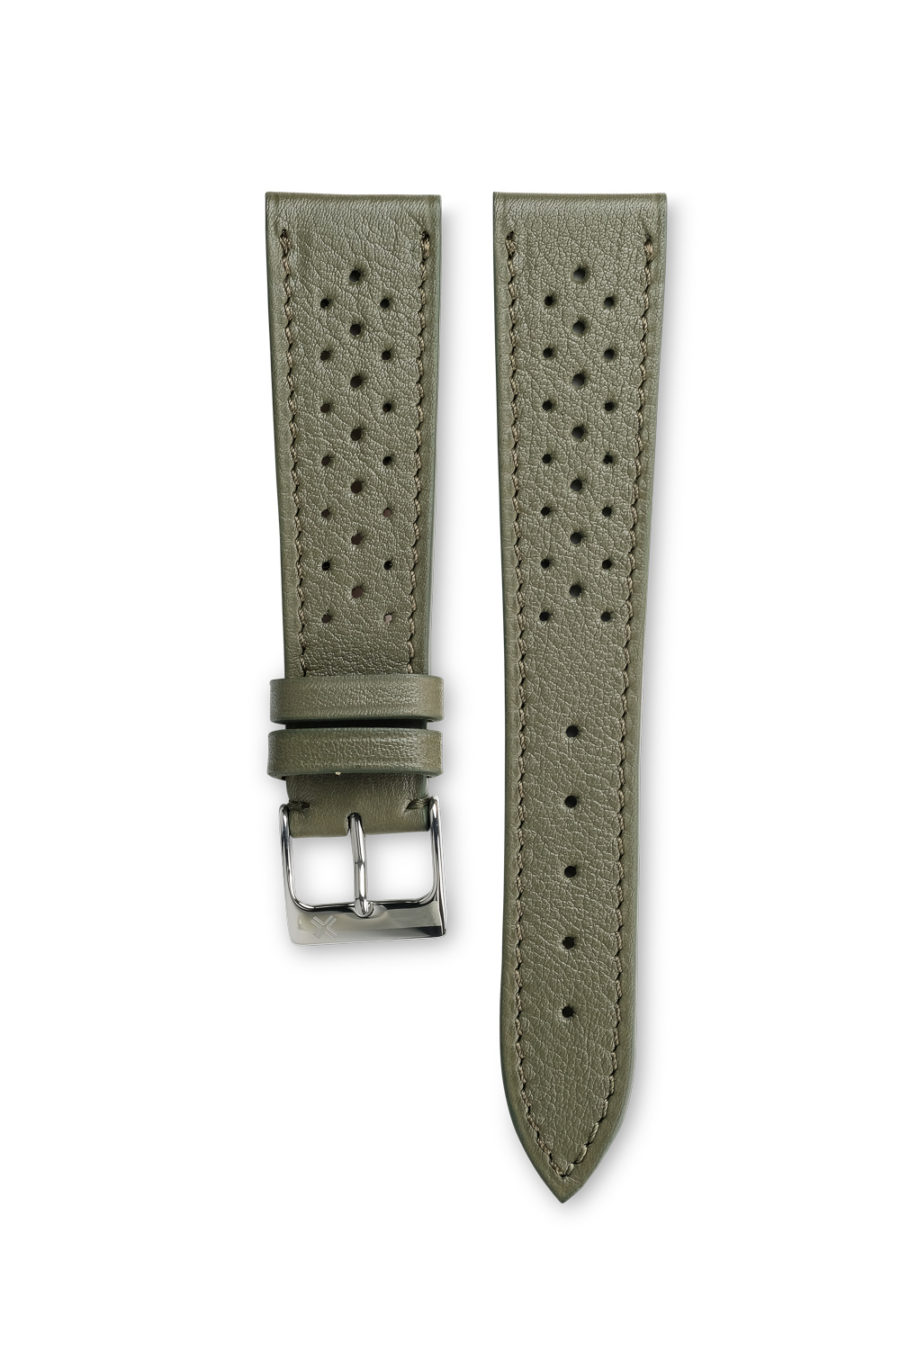 Smooth Racing khaki green leather watch strap - tone on tone stitching - LUGS brand